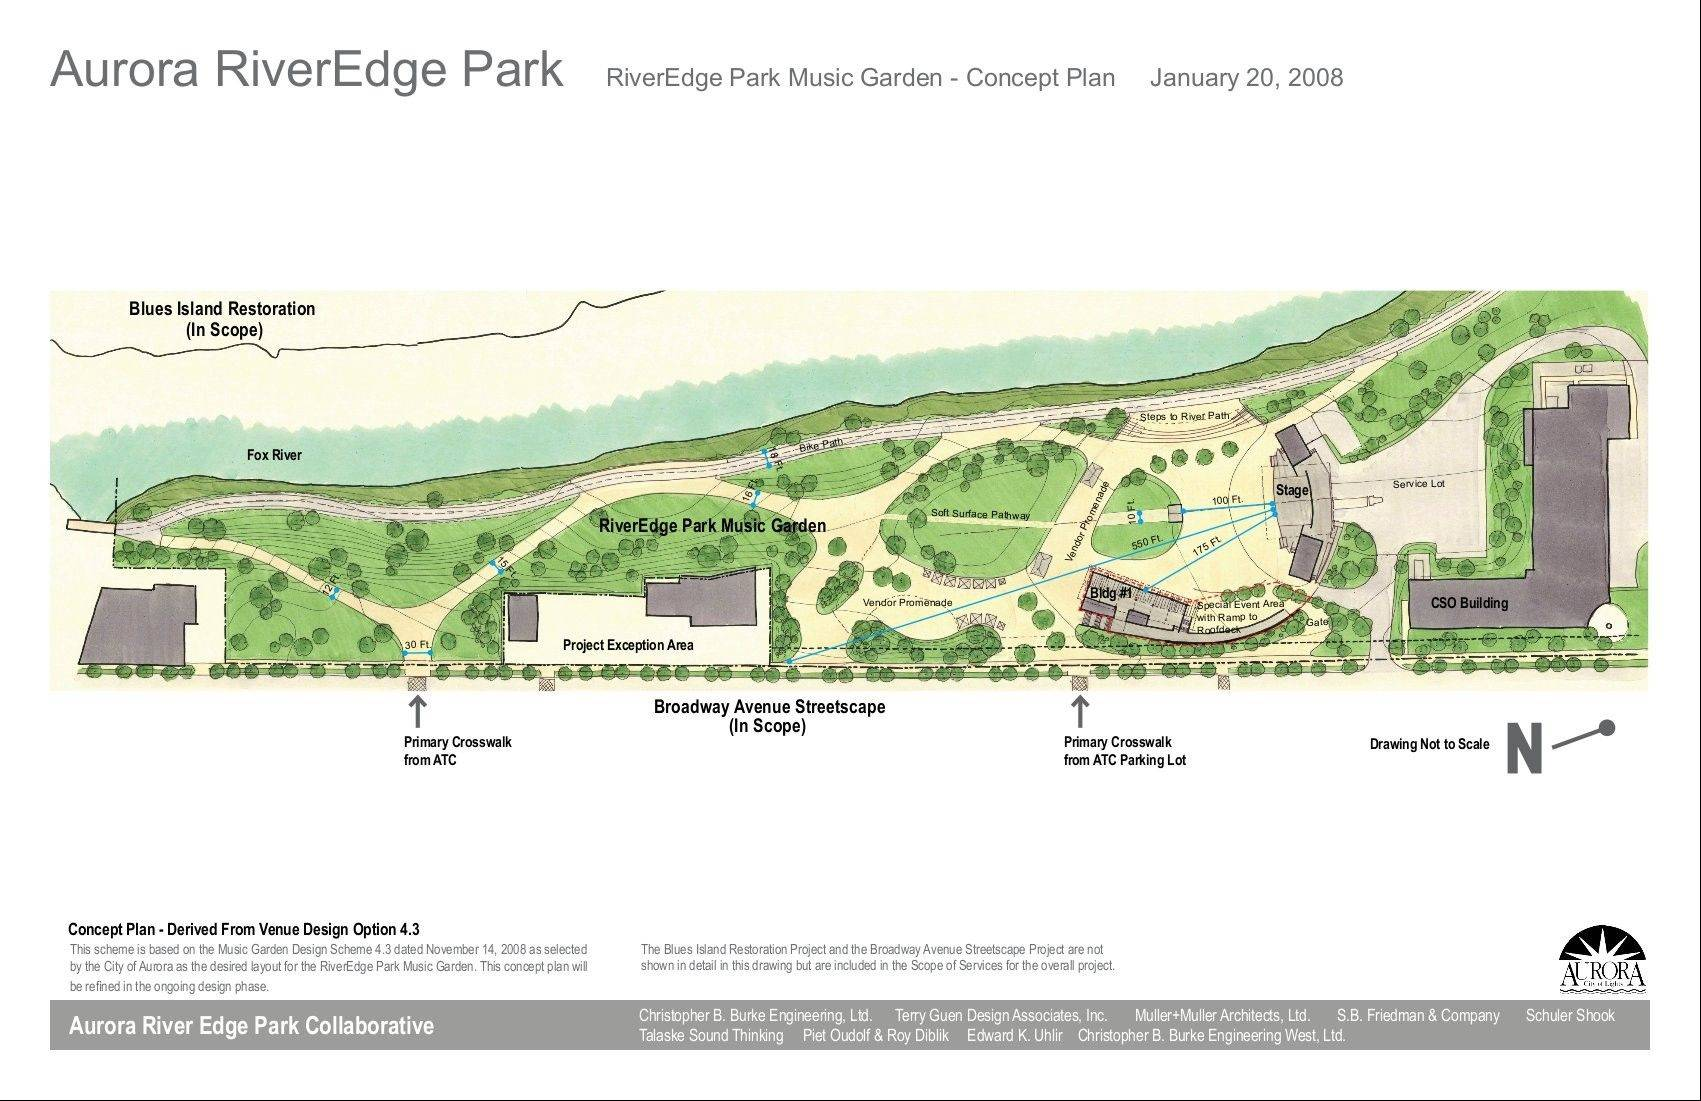 The music garden will be the focal point of RiverEdge Park, which is expected to be constructed by fall 2012.